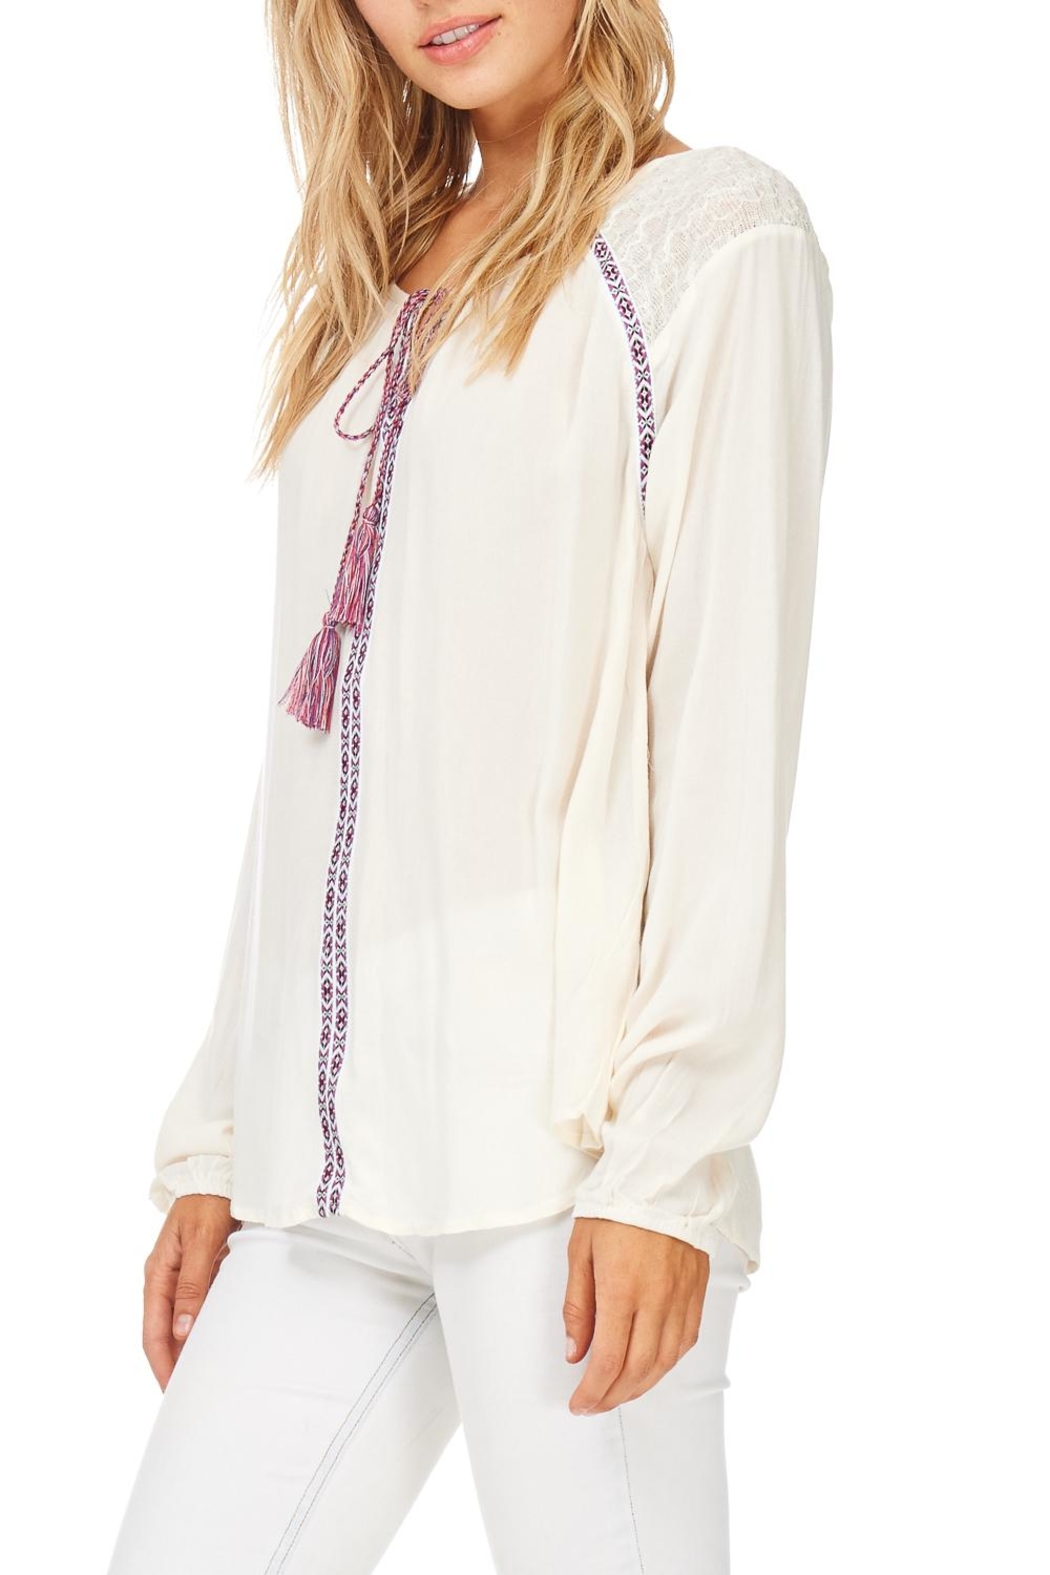 Hem & Thread Tie Peasant Long Sleeve Top - Side Cropped Image